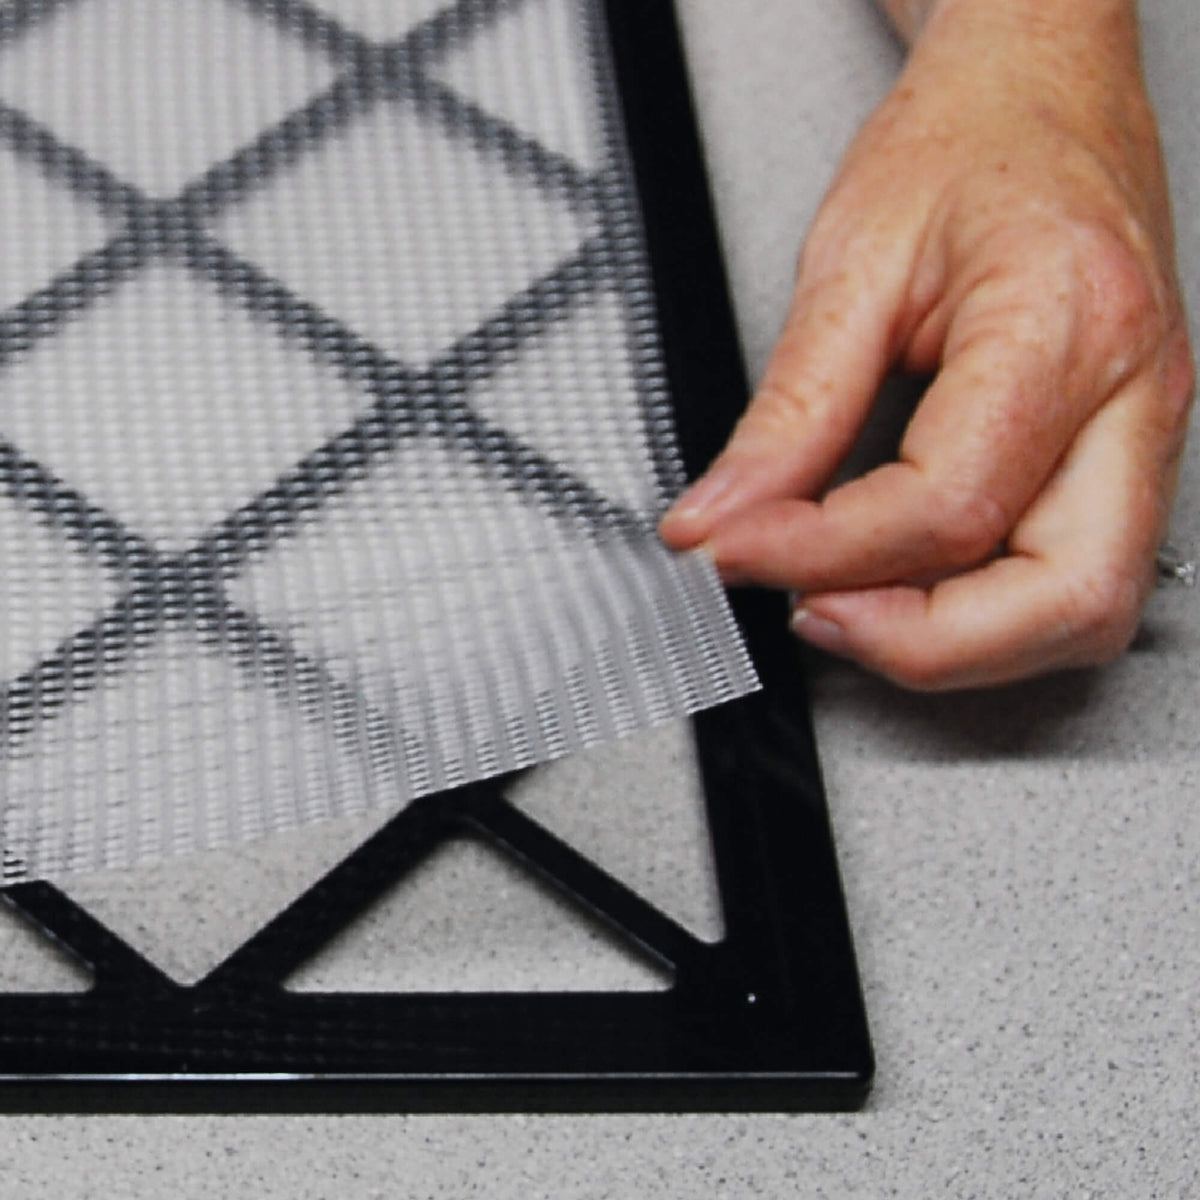 Excalibur dehydrator mesh sheet on a tray with the corner of the sheet being lifted.